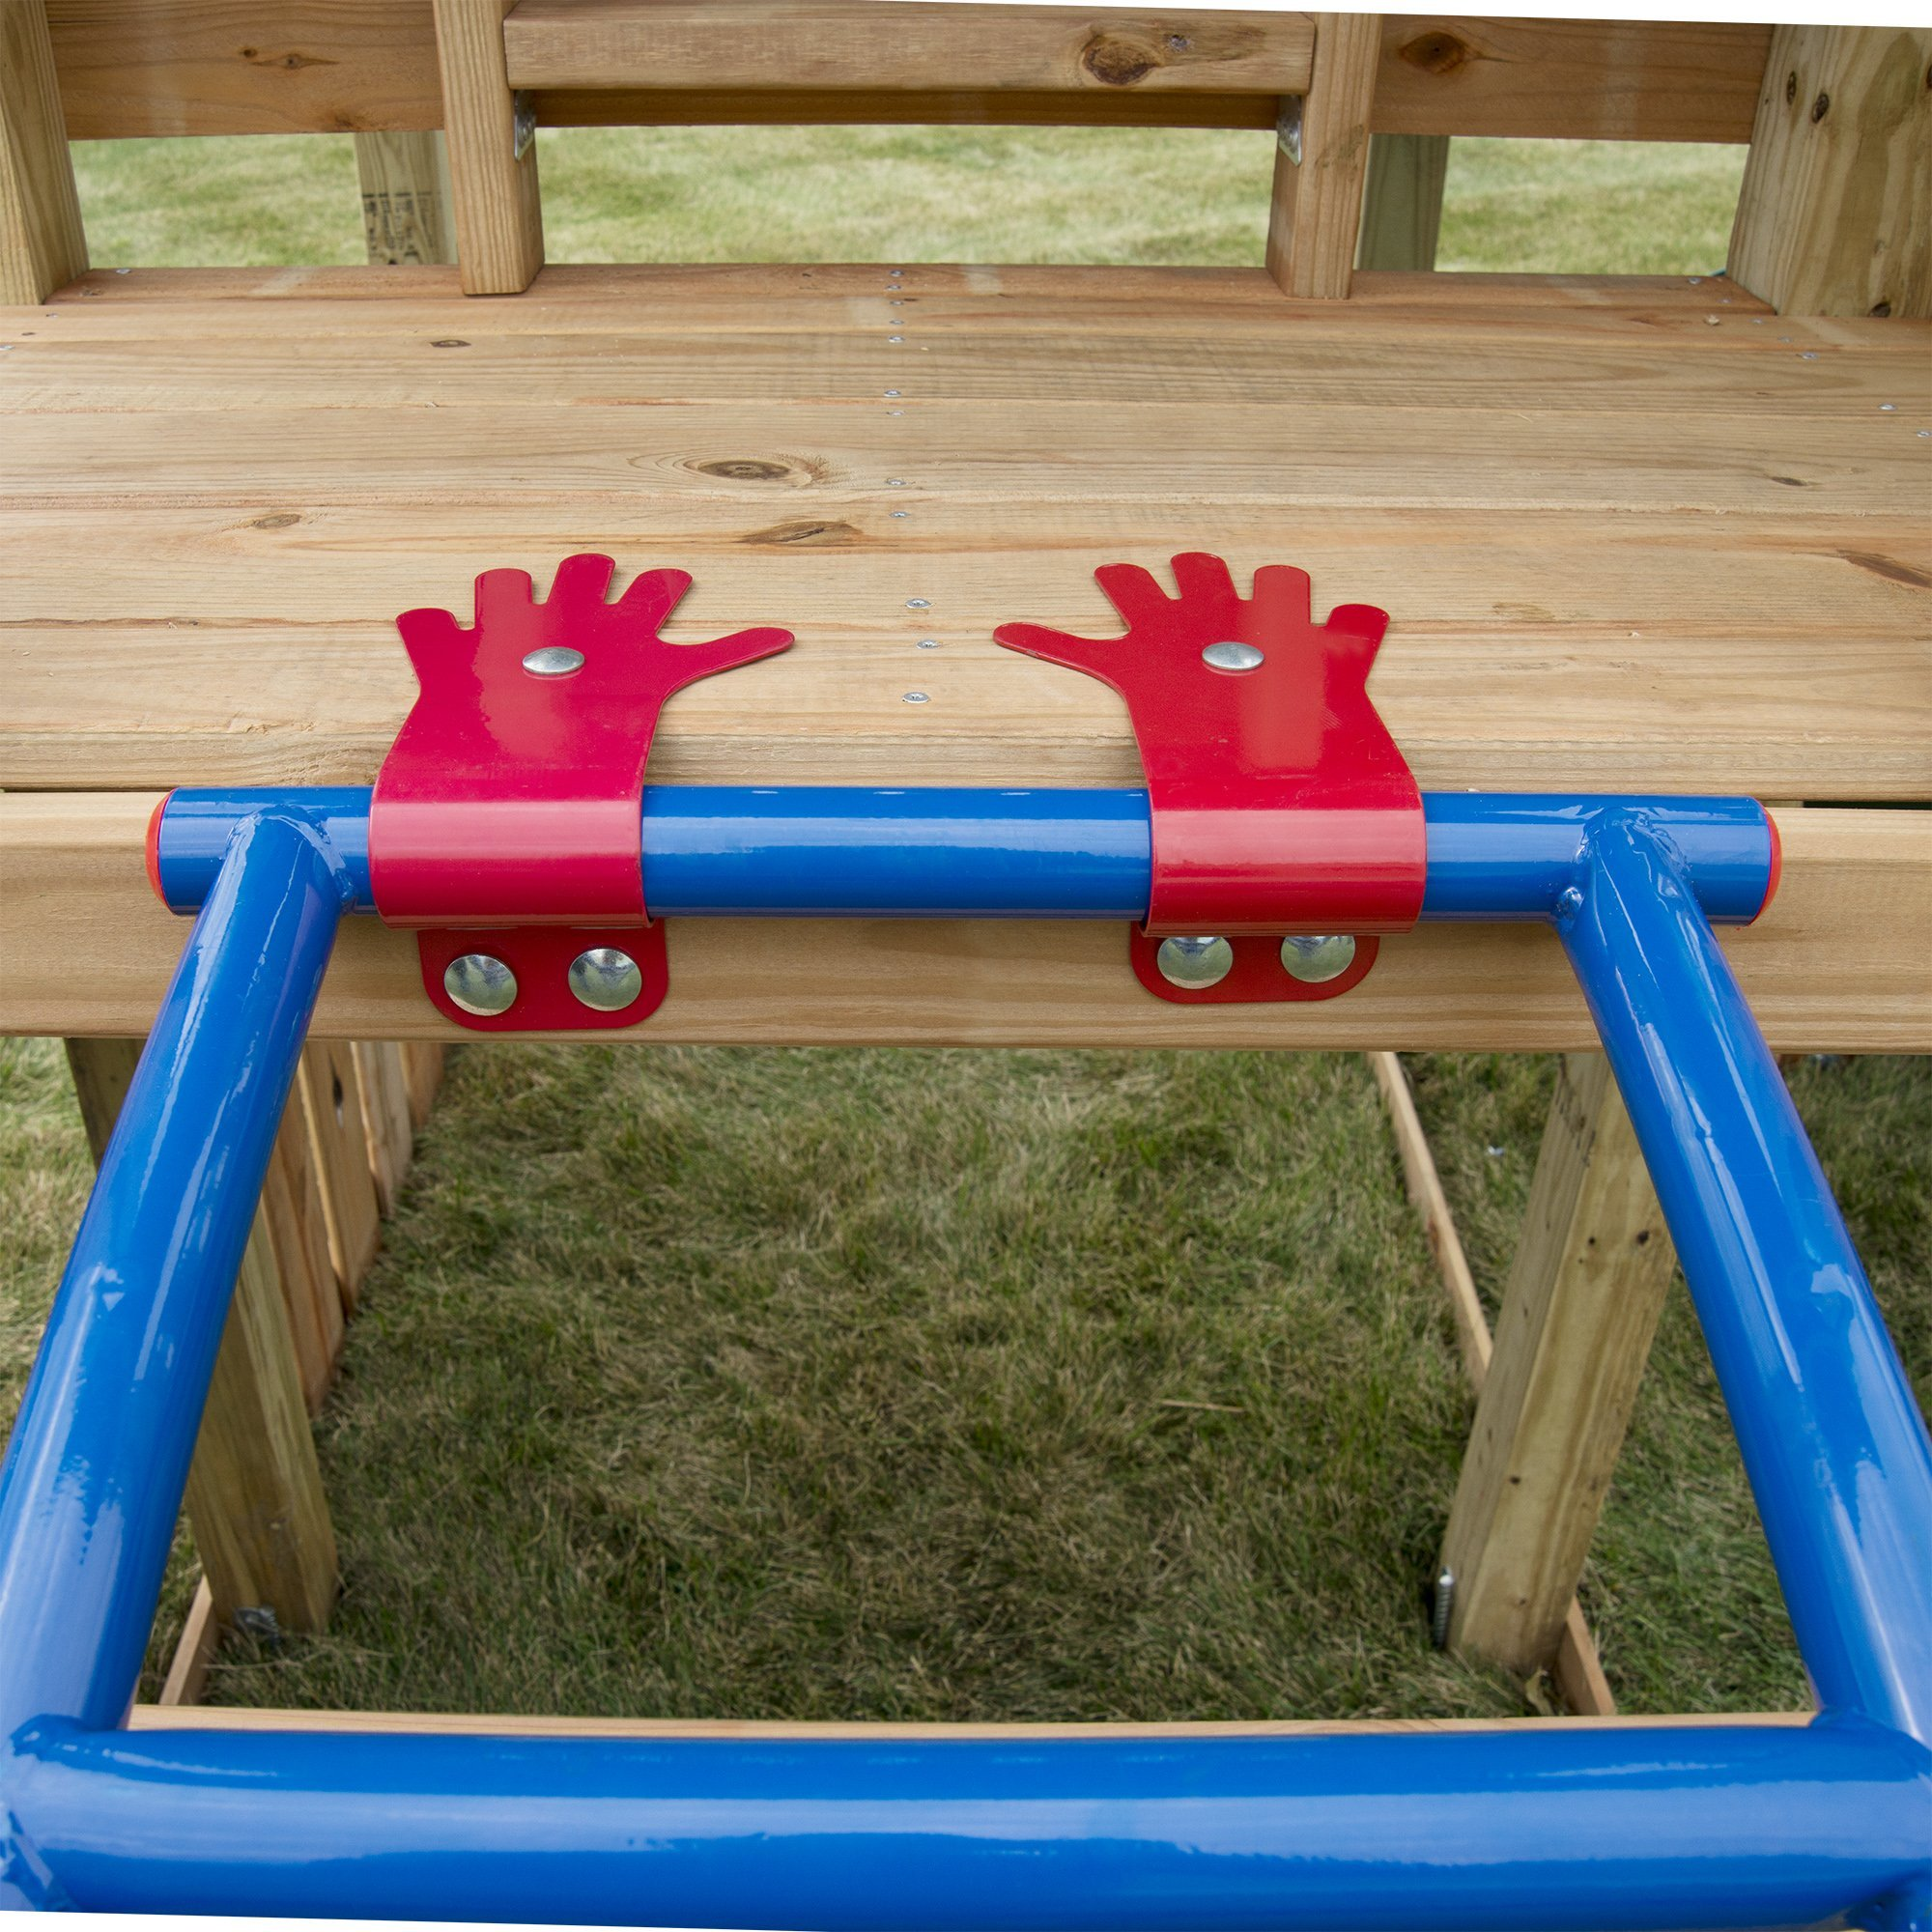 Swing-N-Slide NE 5040 Metal Arch Ladder with Multiple Configurations for Swing Sets, Play Sets & Playhouses, Blue & Red by Swing-N-Slide (Image #6)